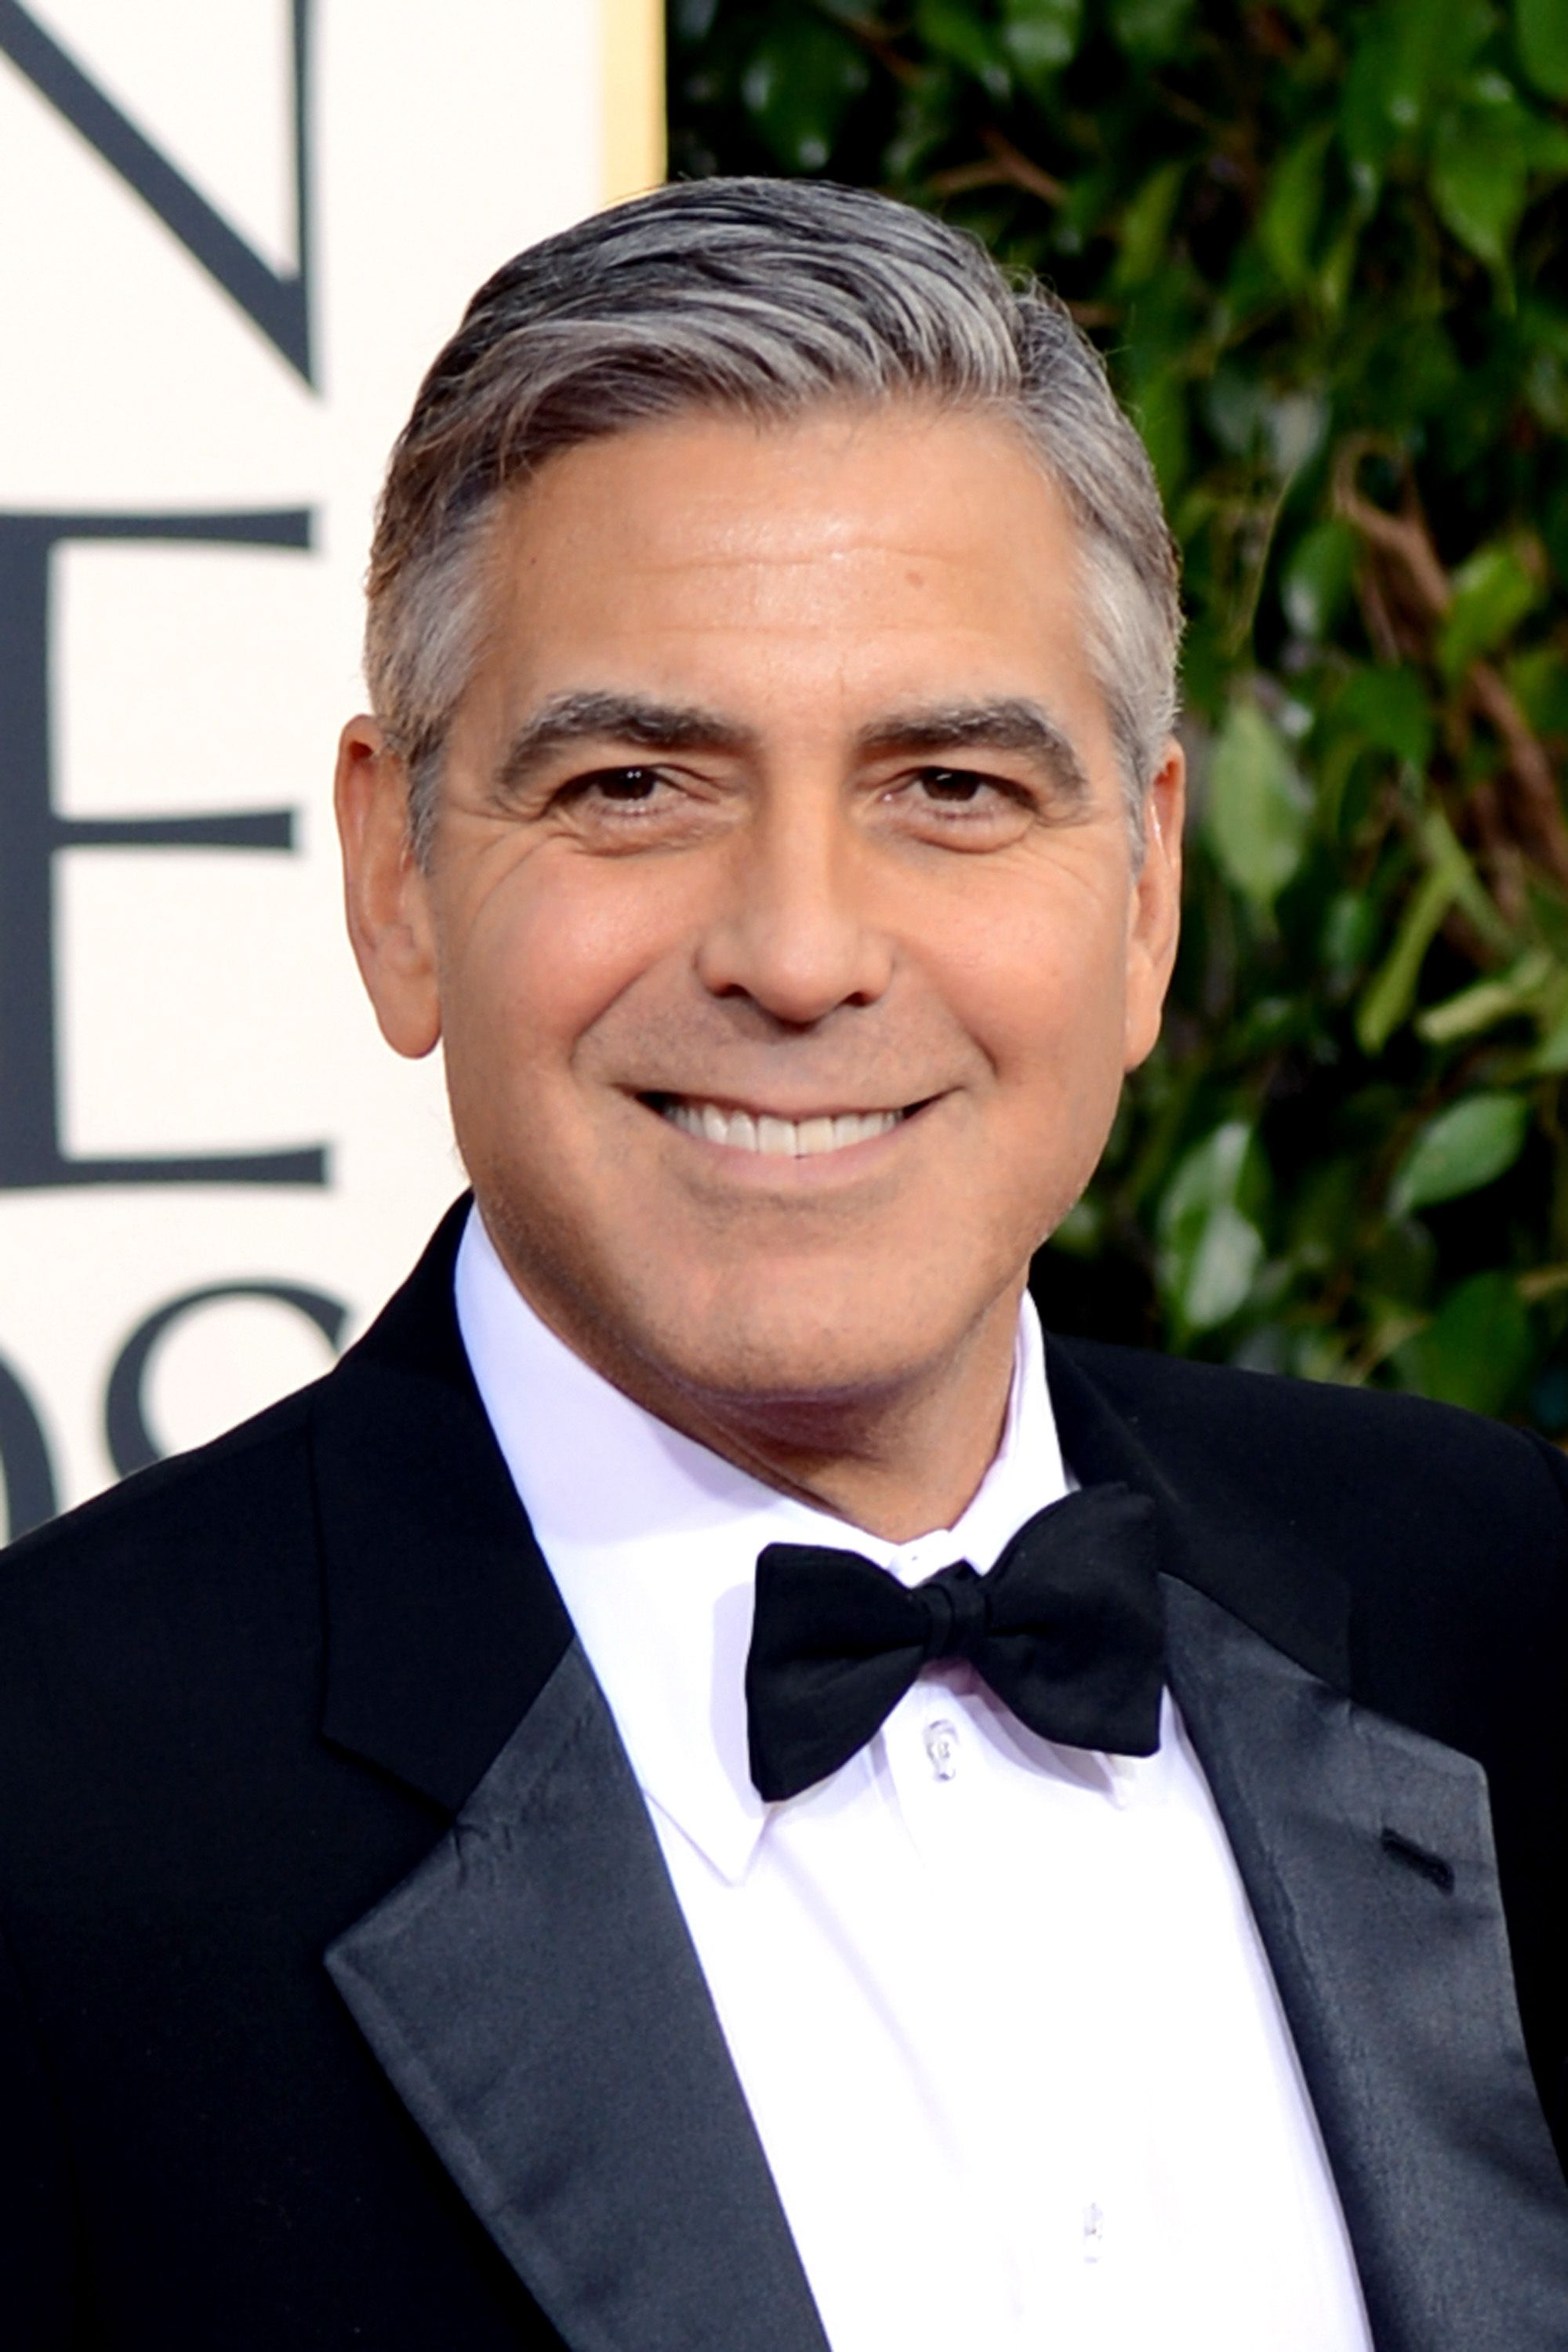 BEVERLY HILLS, CA - JANUARY 13:  Actor George Clooney arrives at the 70th Annual Golden Globe Awards held at The Beverly Hilton Hotel on January 13, 2013 in Beverly Hills, California.  (Photo by Jason Merritt/Getty Images)